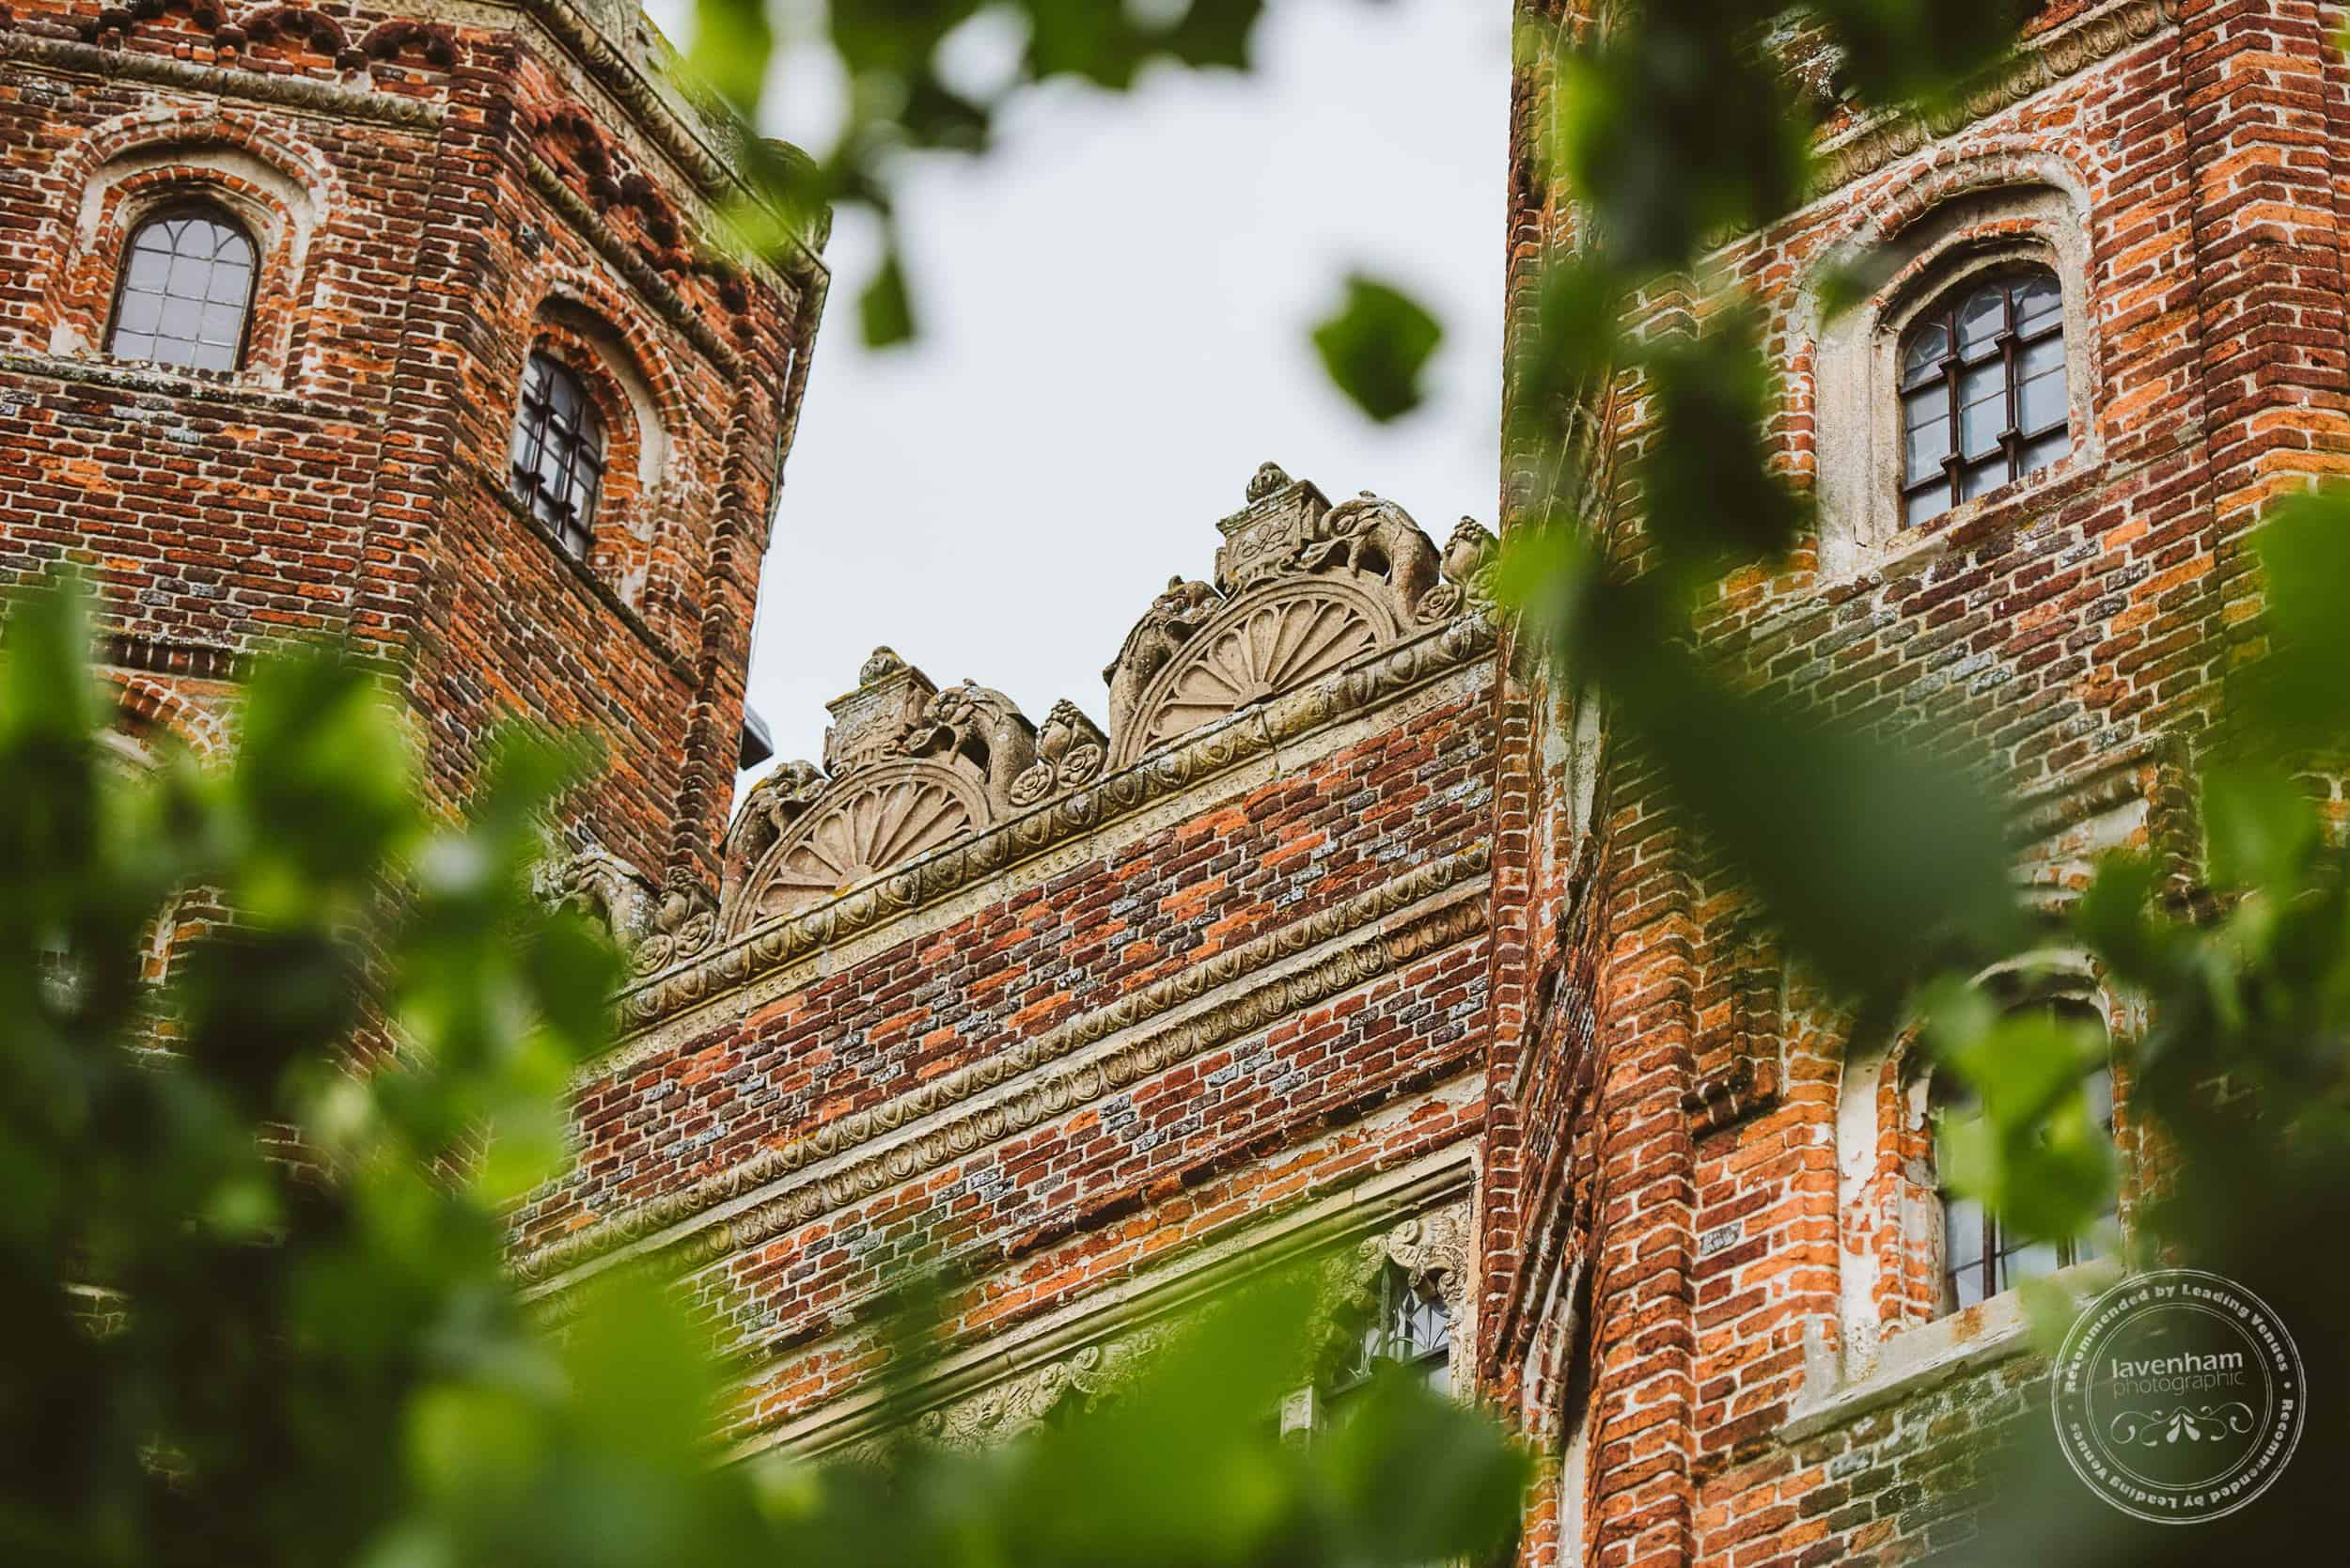 140717 Layer Marney Wedding Photography by Lavenham Photographic 011